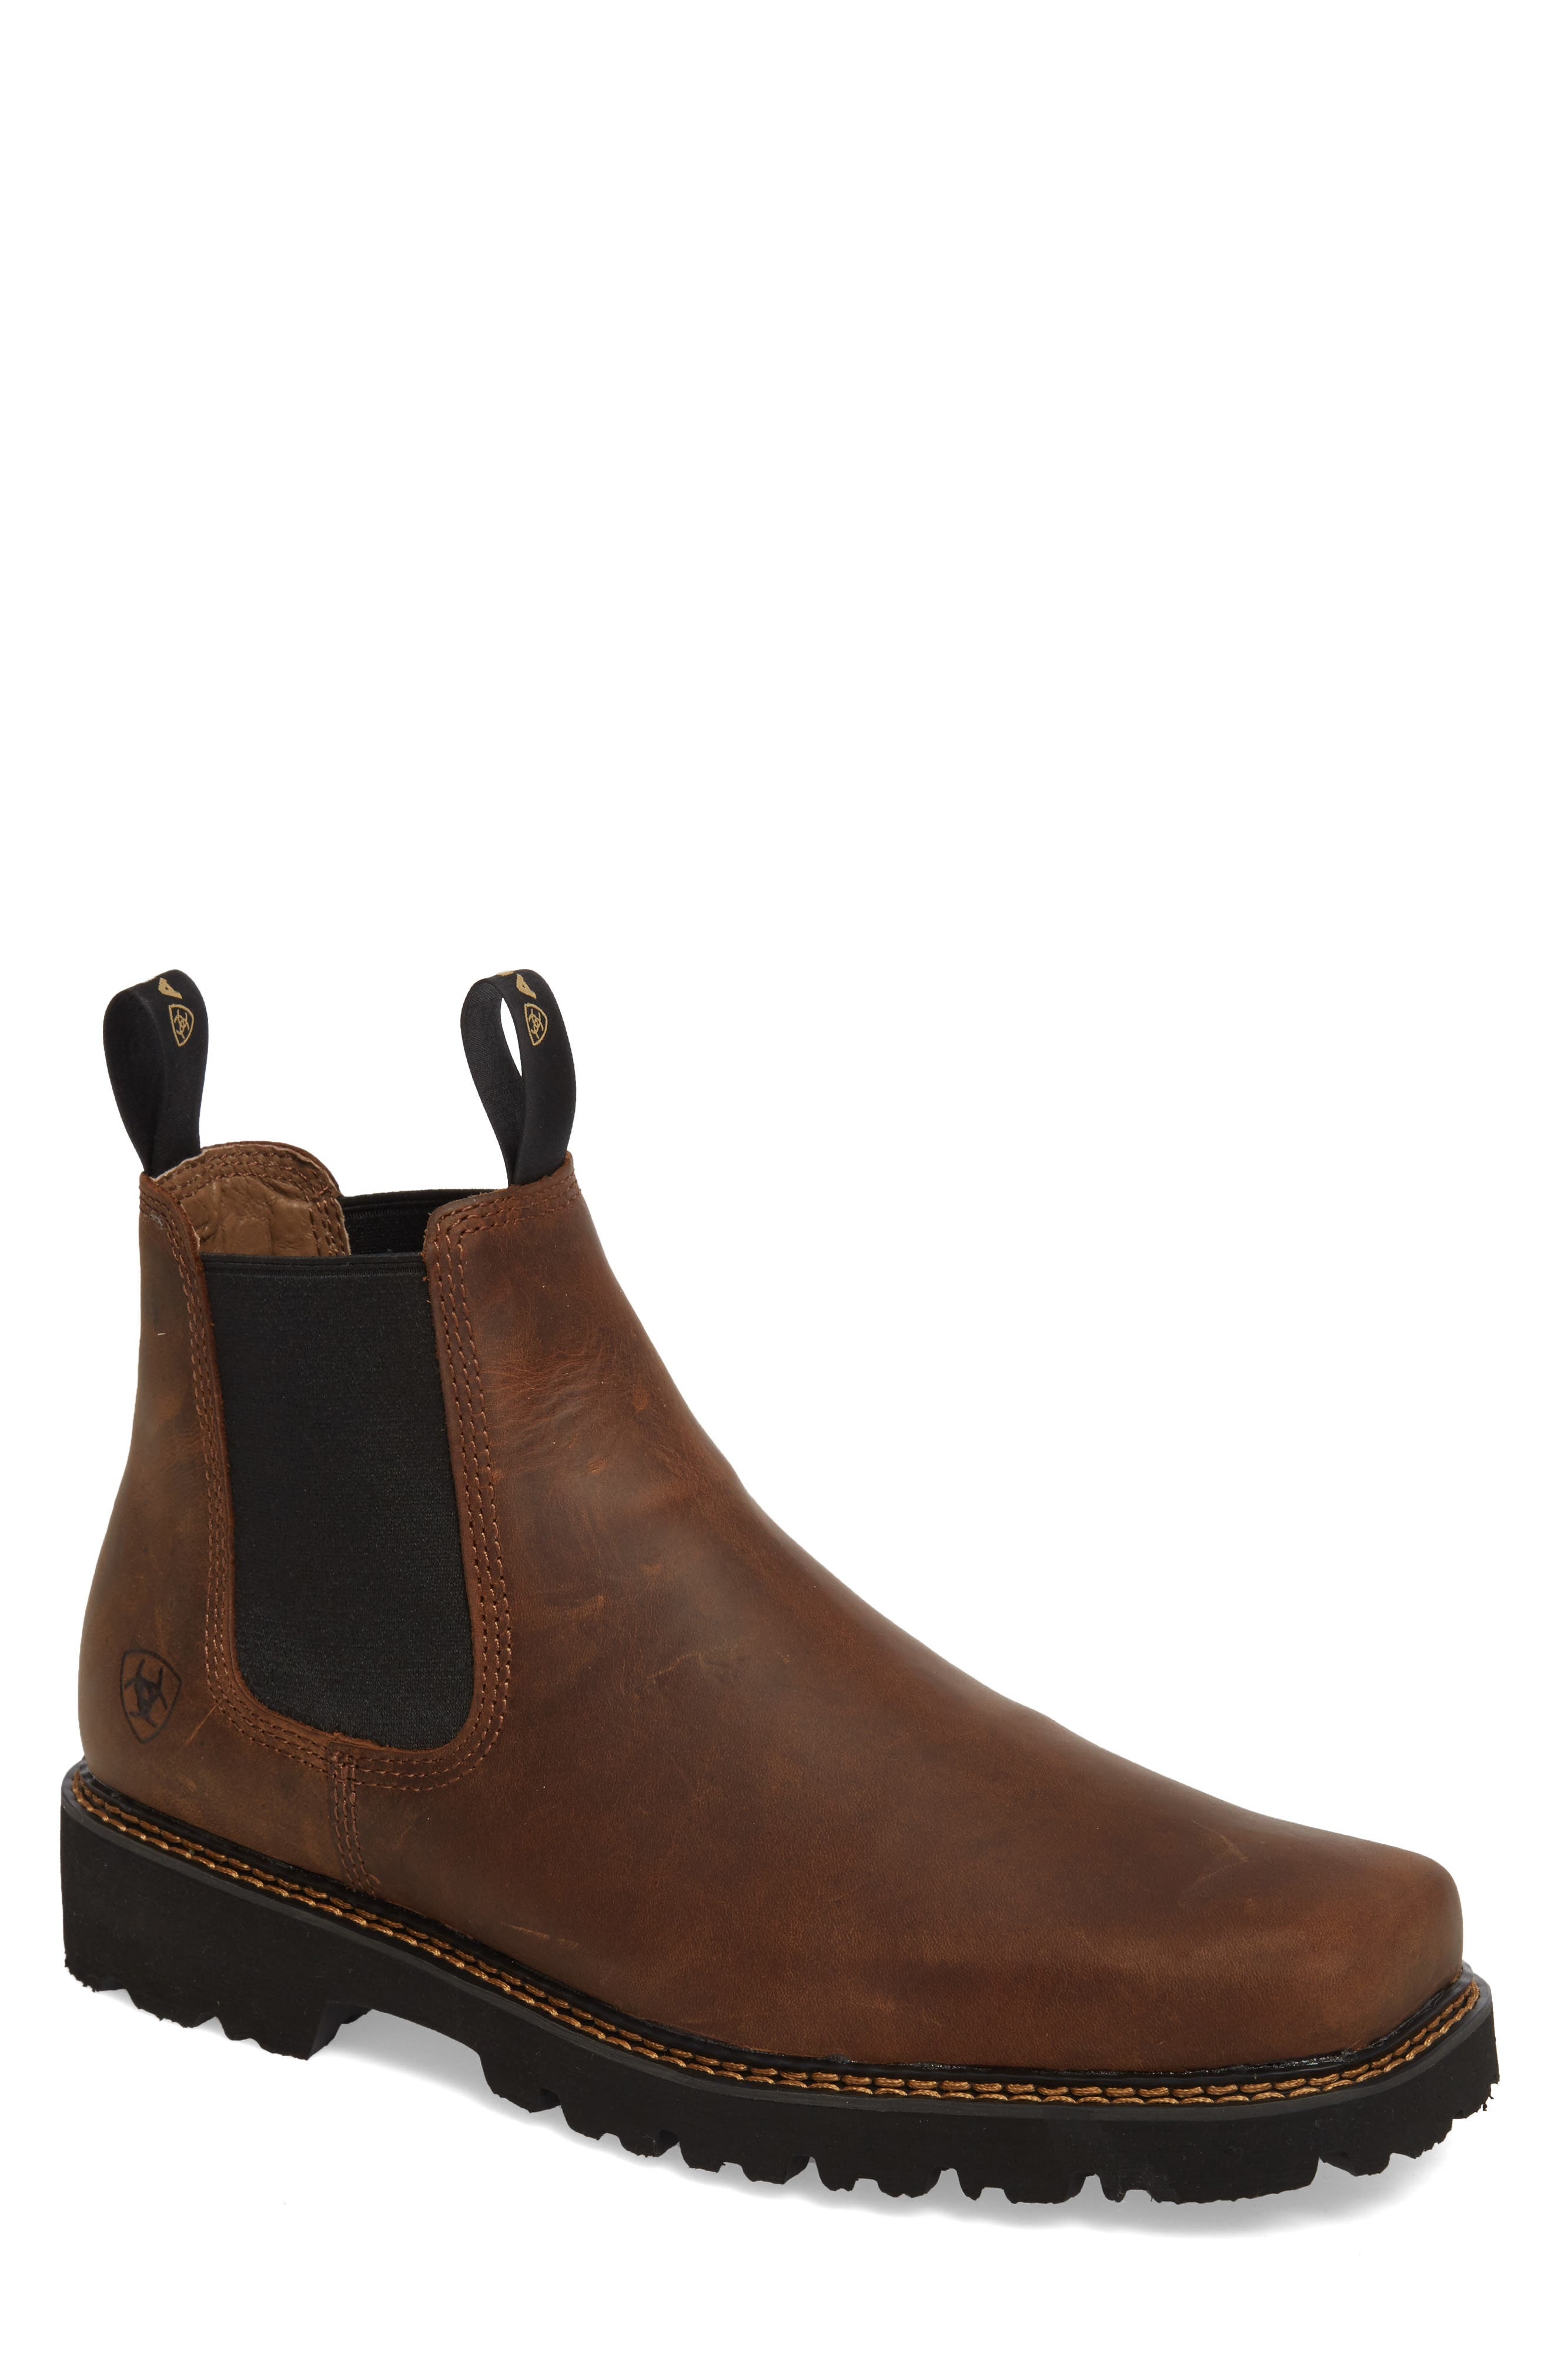 ARIAT, 'Spot Hog' Chelsea Boot, Main thumbnail 1, color, DISTRESSED BROWN LEATHER